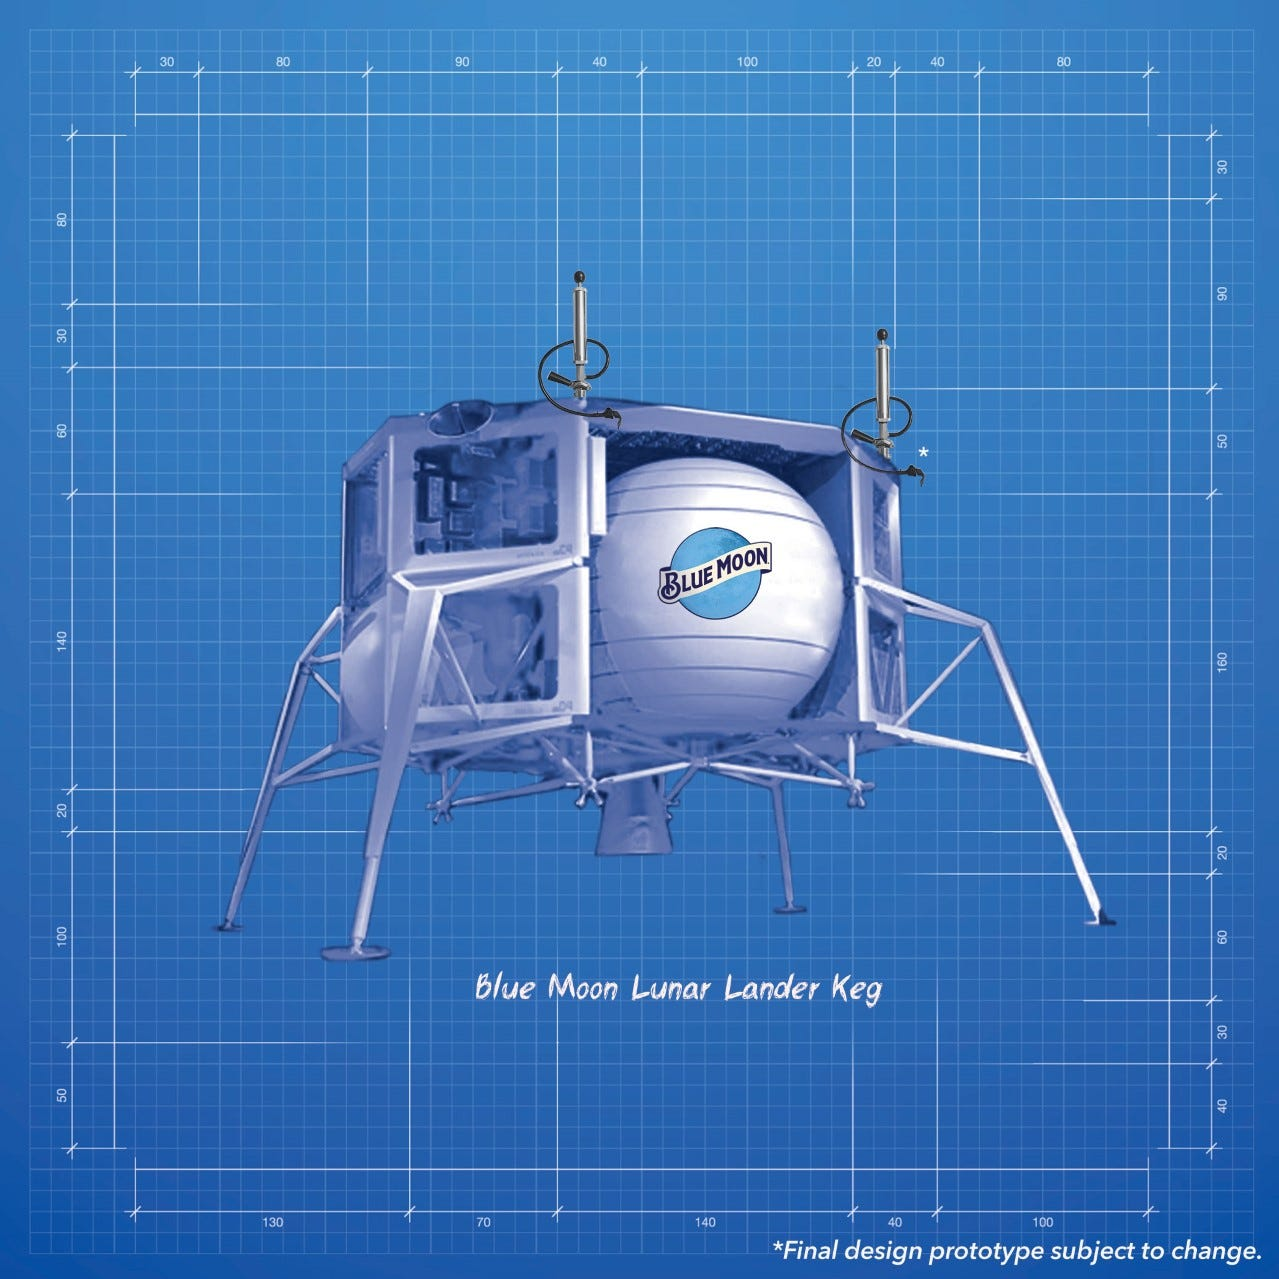 Blue Moon announces limited edition kegs in honor of Blue Origin's lunar lander